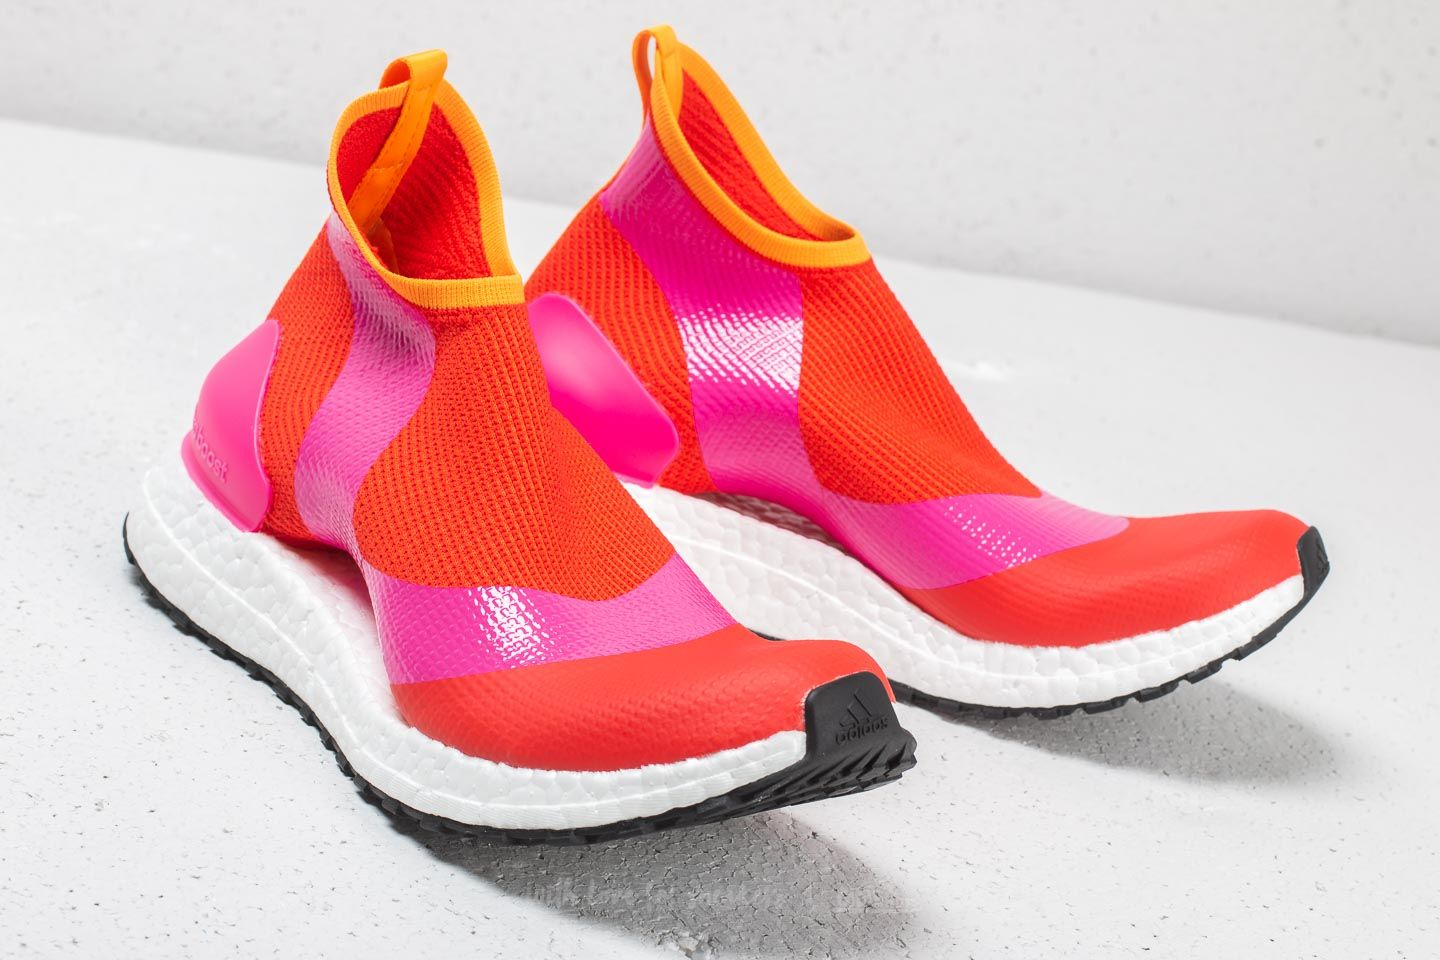 newest 38931 009f3 adidas x Stella McCartney Ultraboost X All Terrain Energy  Shock Pink  Core  Red a